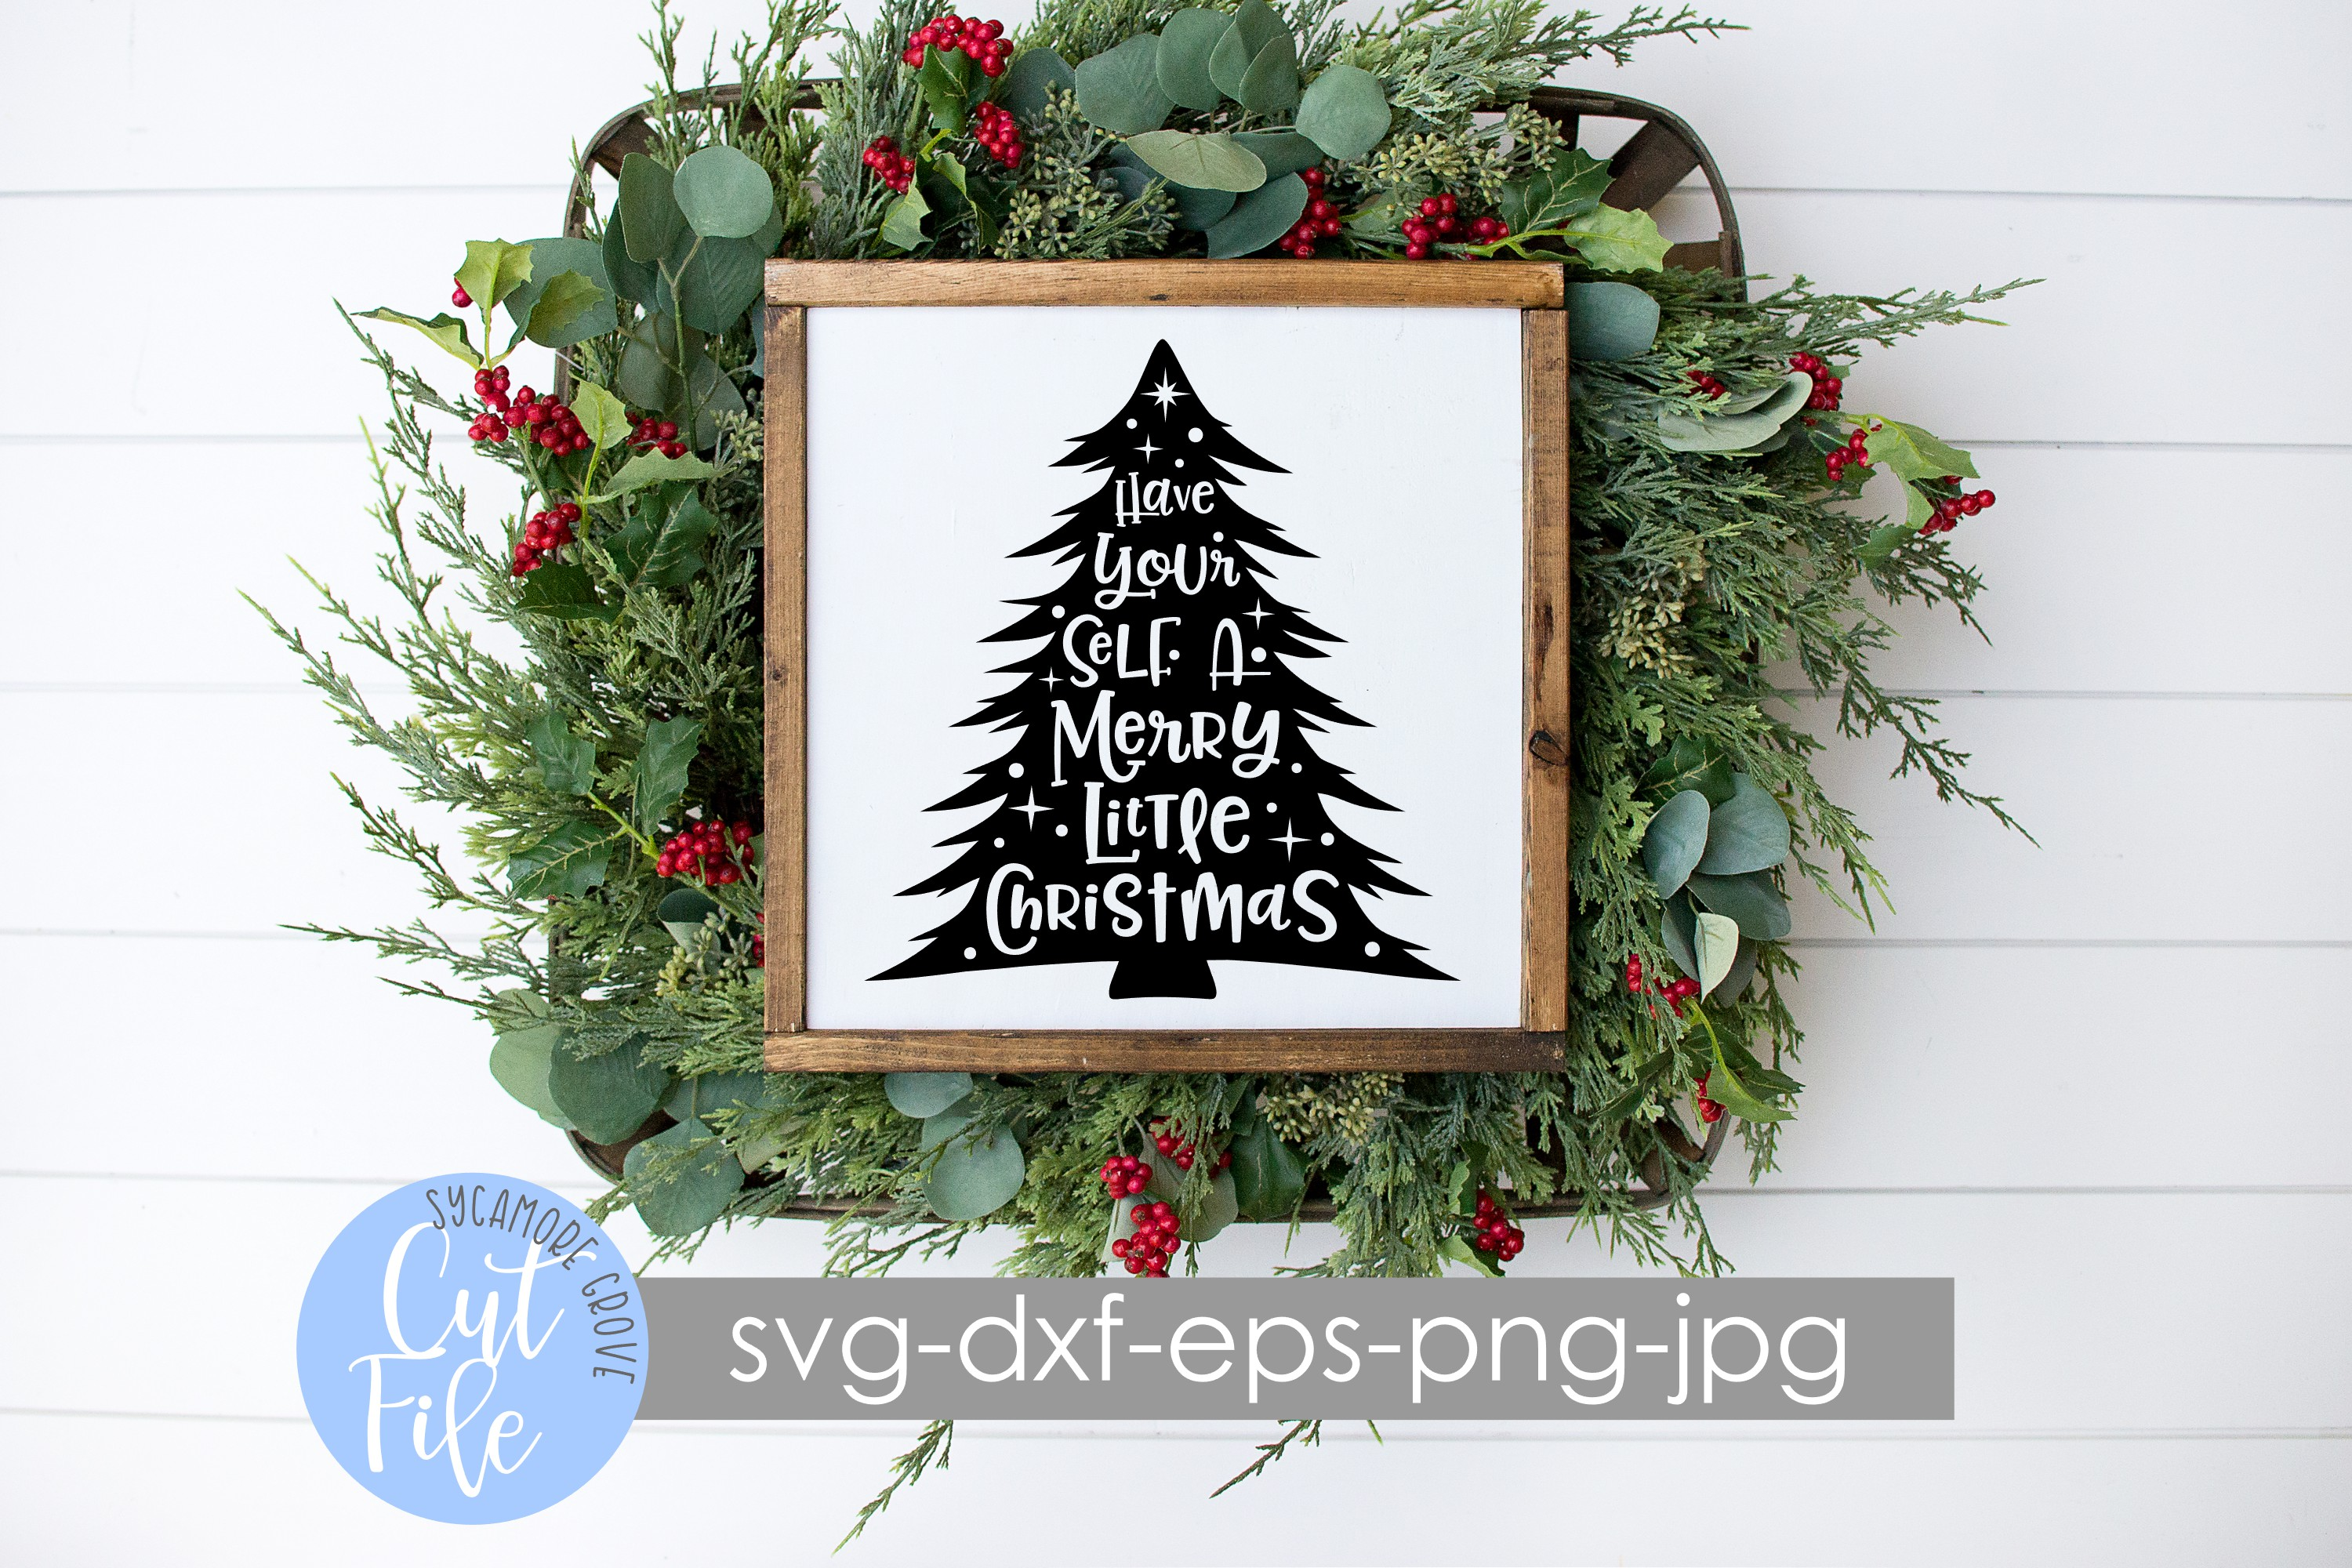 Have Yourself A Merry Little Christmas SVG example image 2